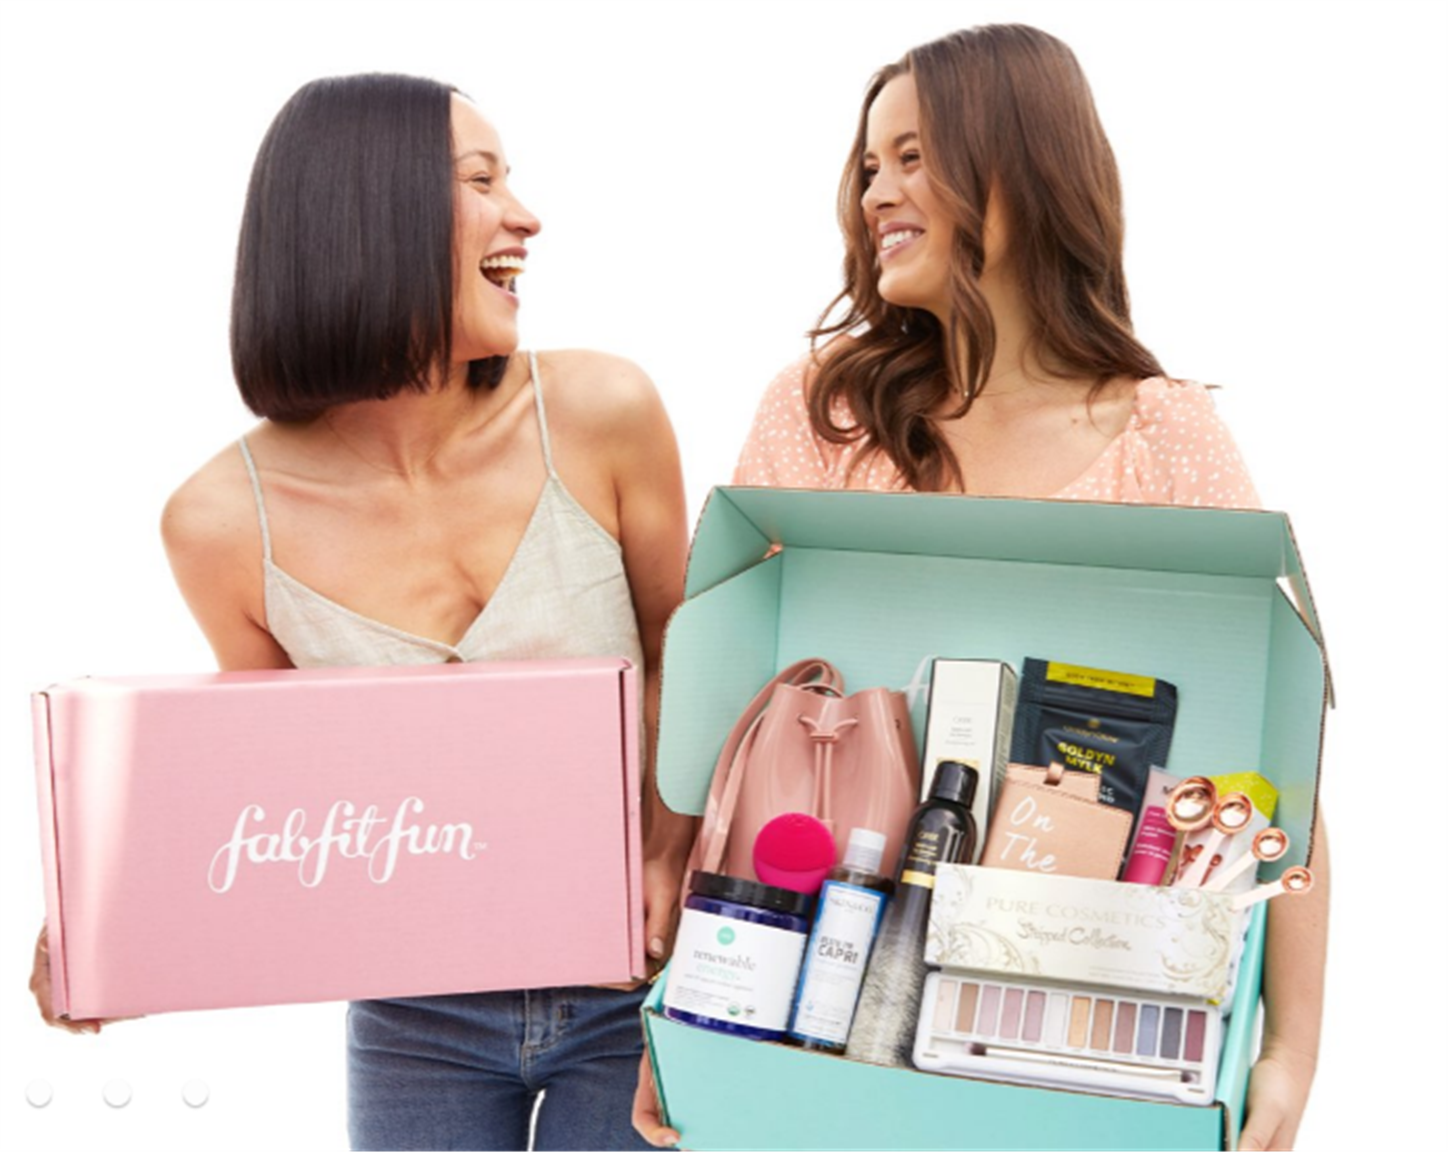 FabFitFun – Winter 2020 Box Only $39.99 ($200 Value) + Additional $200 Bonus Gift Bundle For New Annual Subscribers!